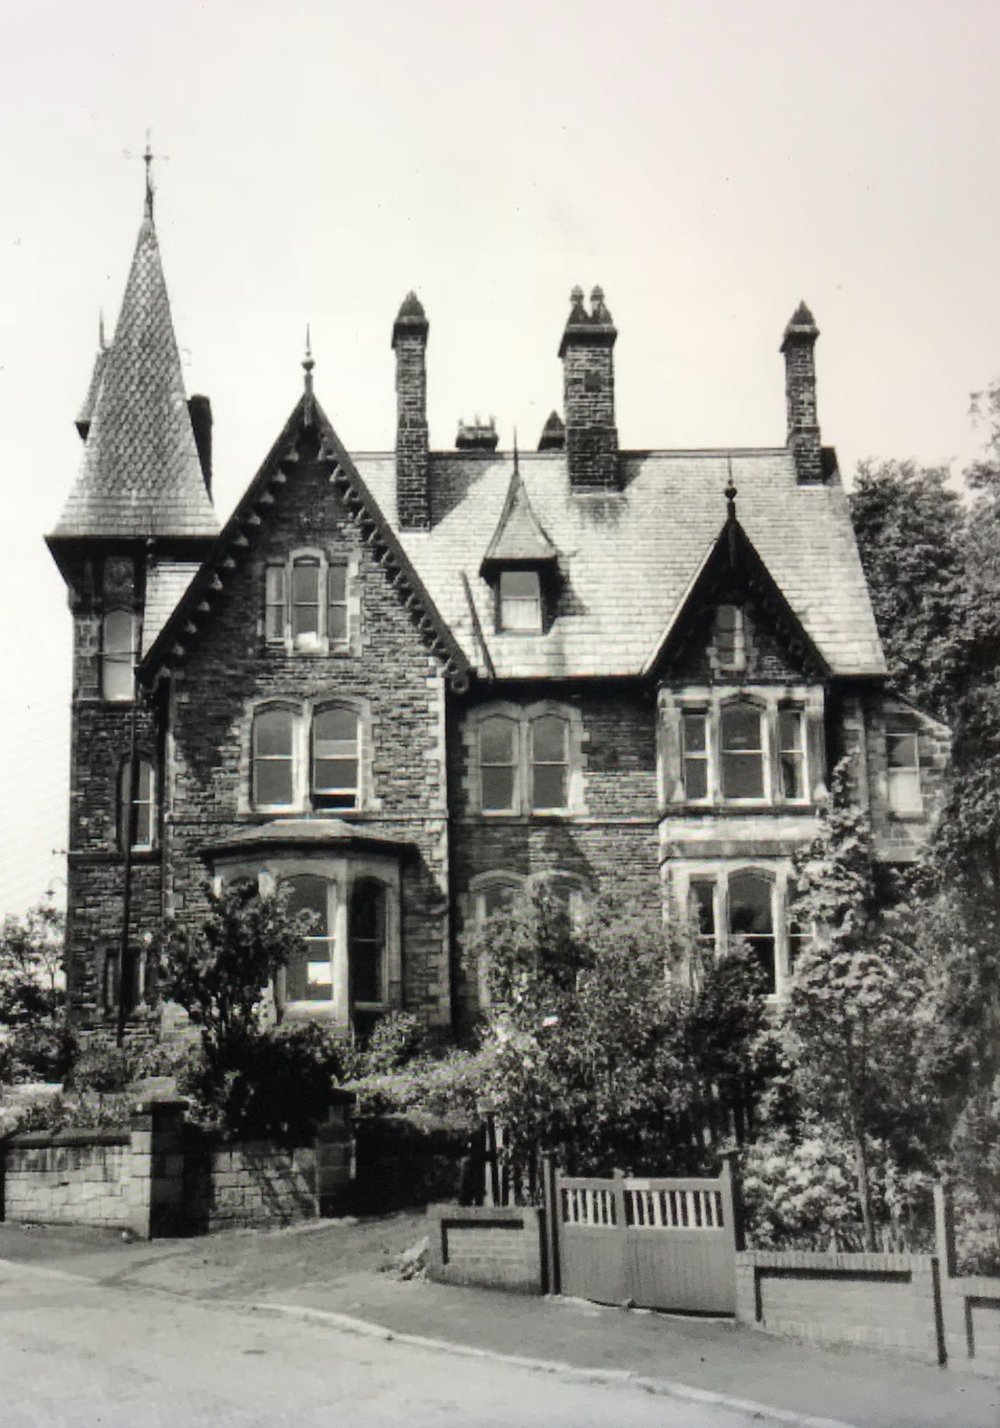 Weetwood Lodge / Manor